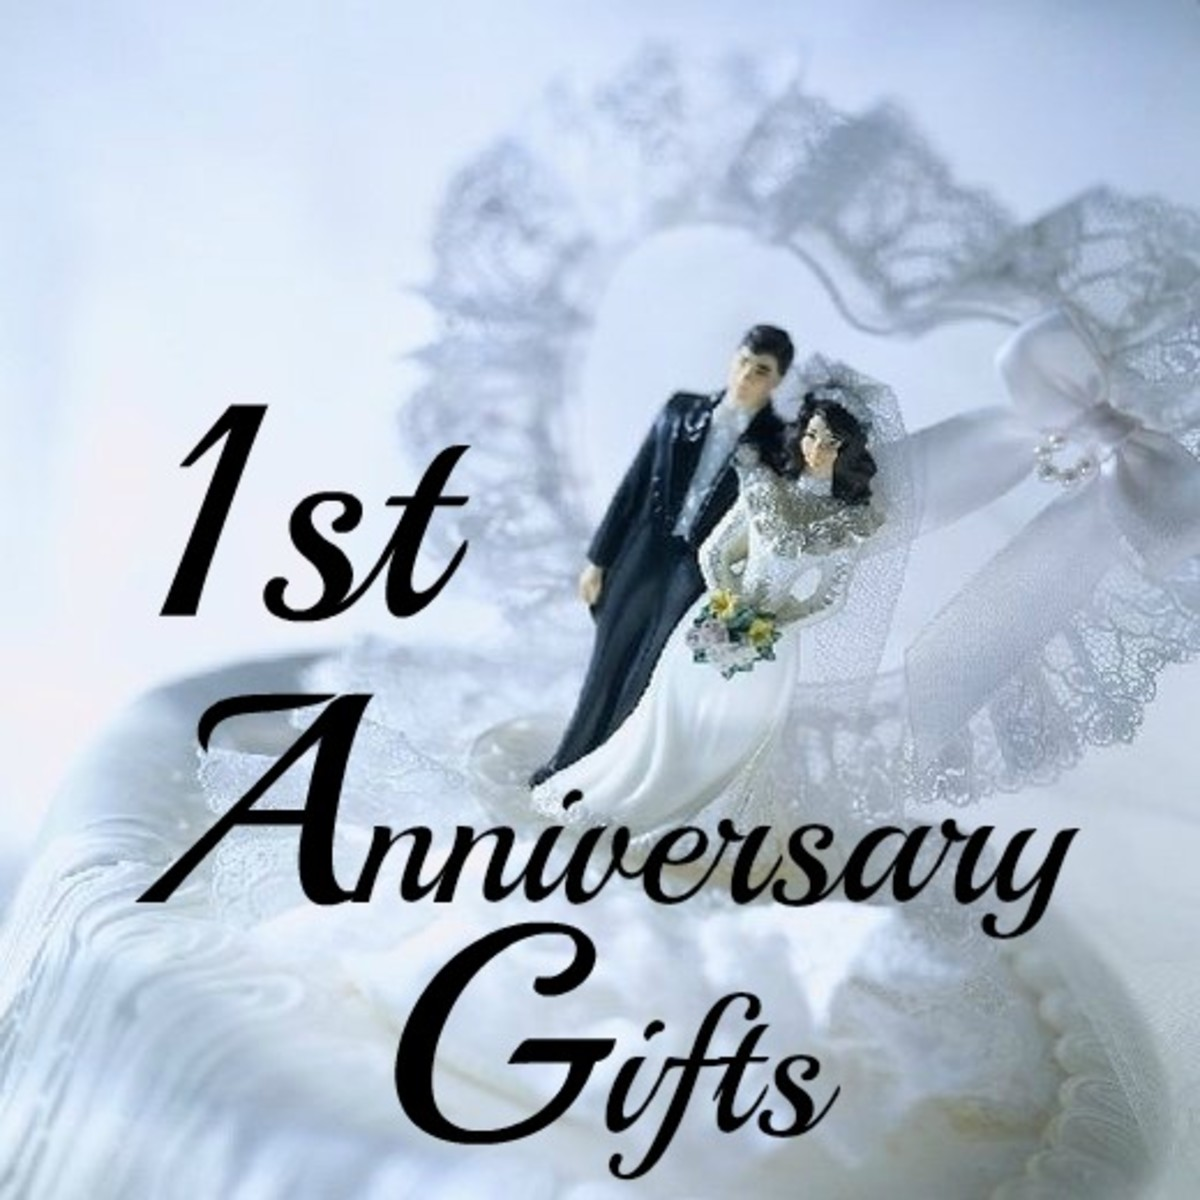 1st ANNIVERSARY GIFTS | 75 One Year Anniversary Ideas